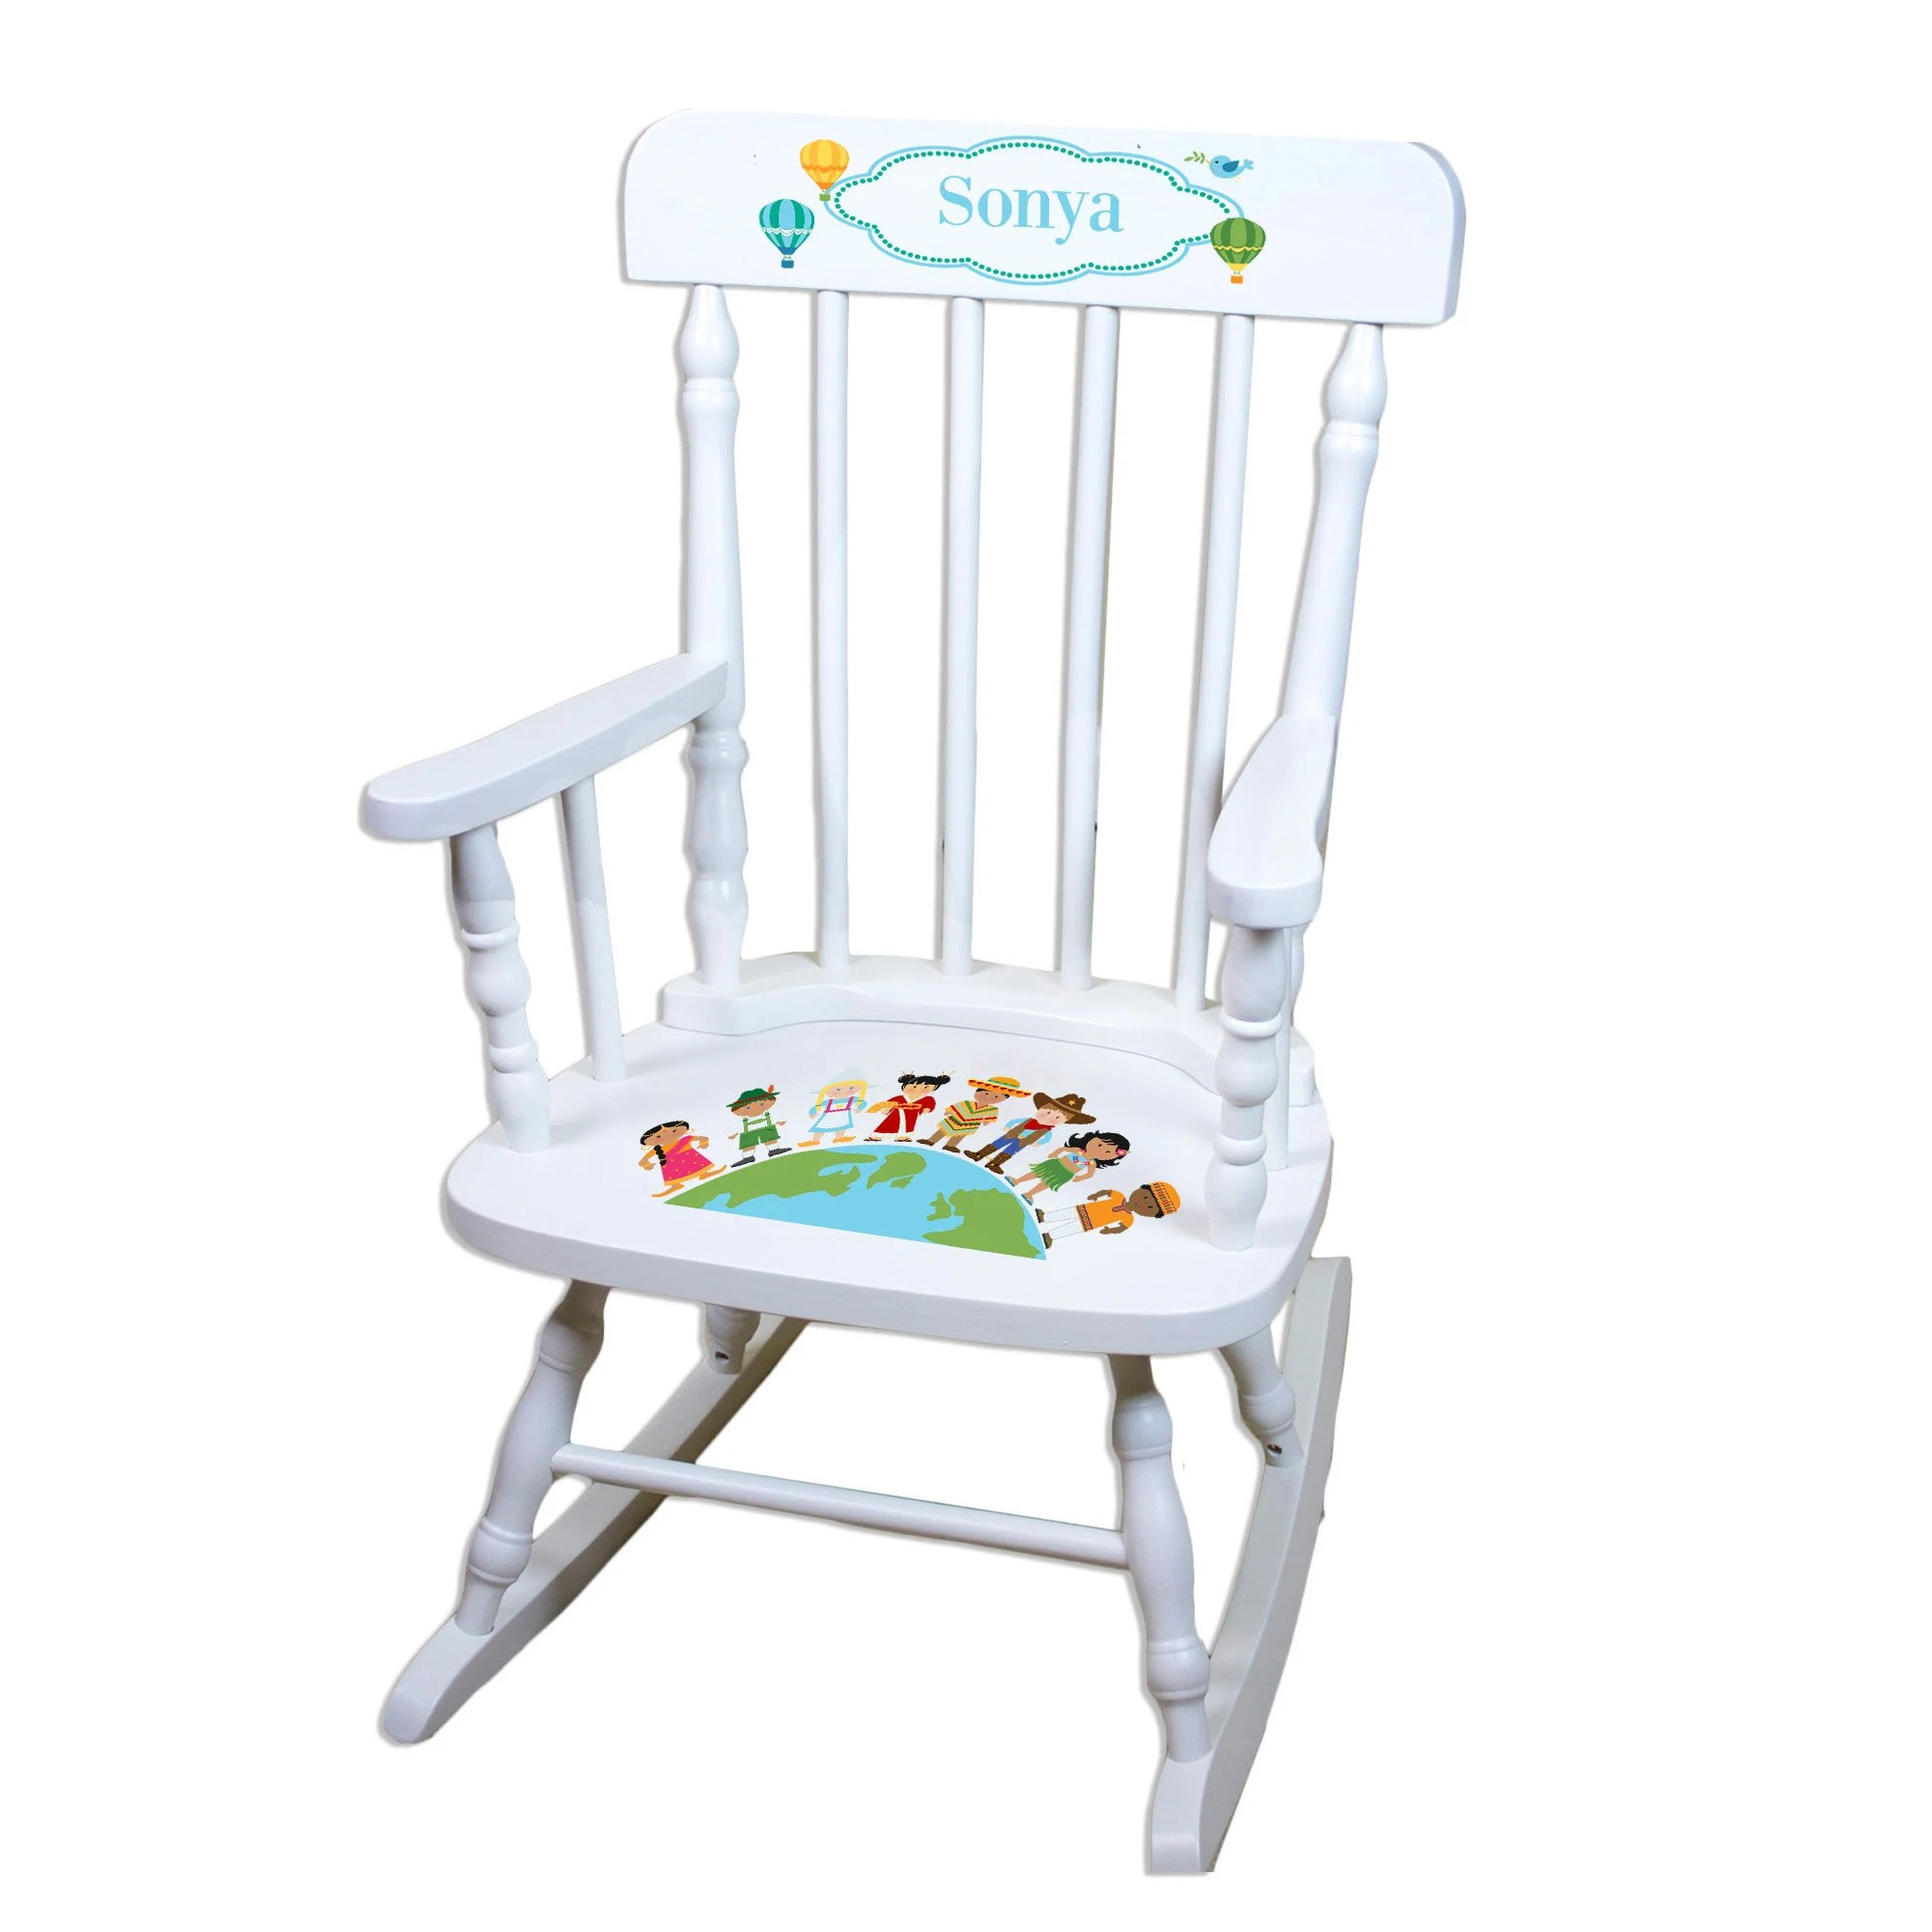 white wood rocking chair bad posture in personalized wooden childrens disney world etsy 50